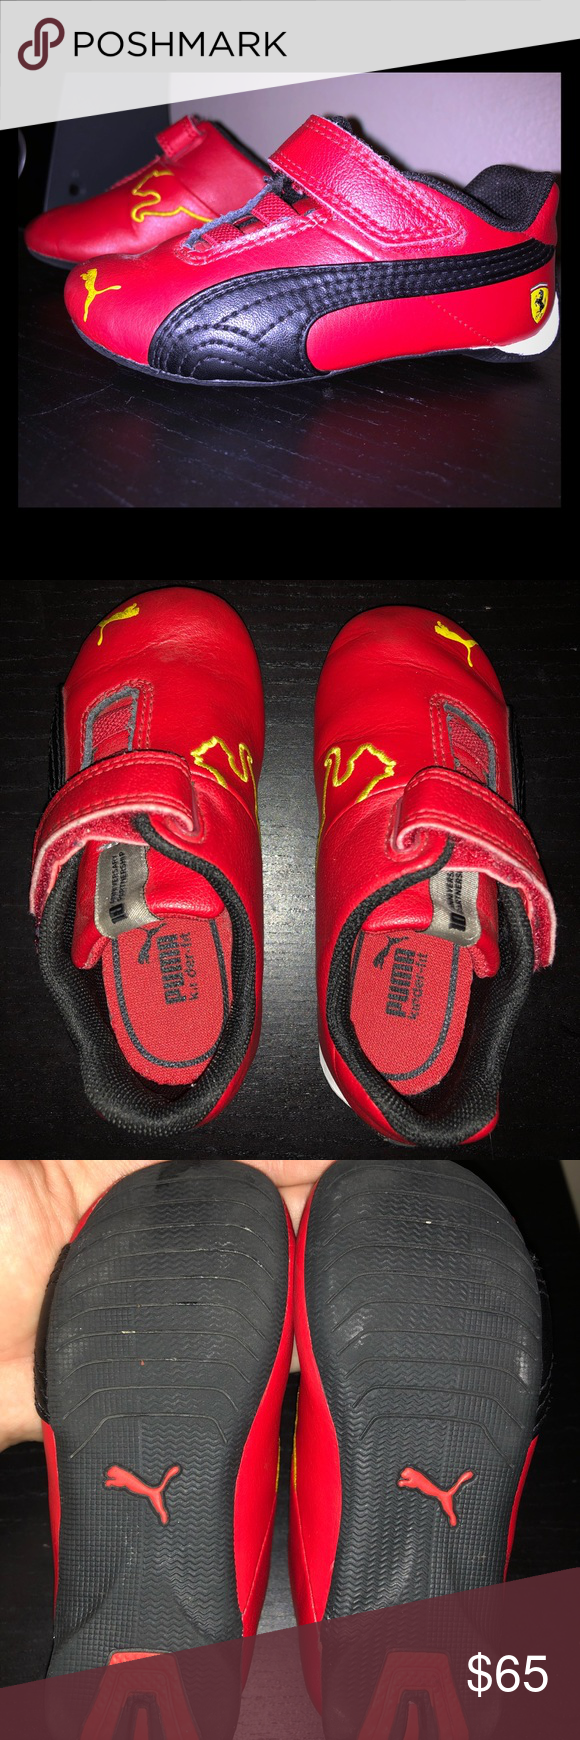 7784f9f2f00489 PUMA FERRARI ALMOST NEW SNEAKERS IN RED SIZE 6🔥 These babies are IT ...